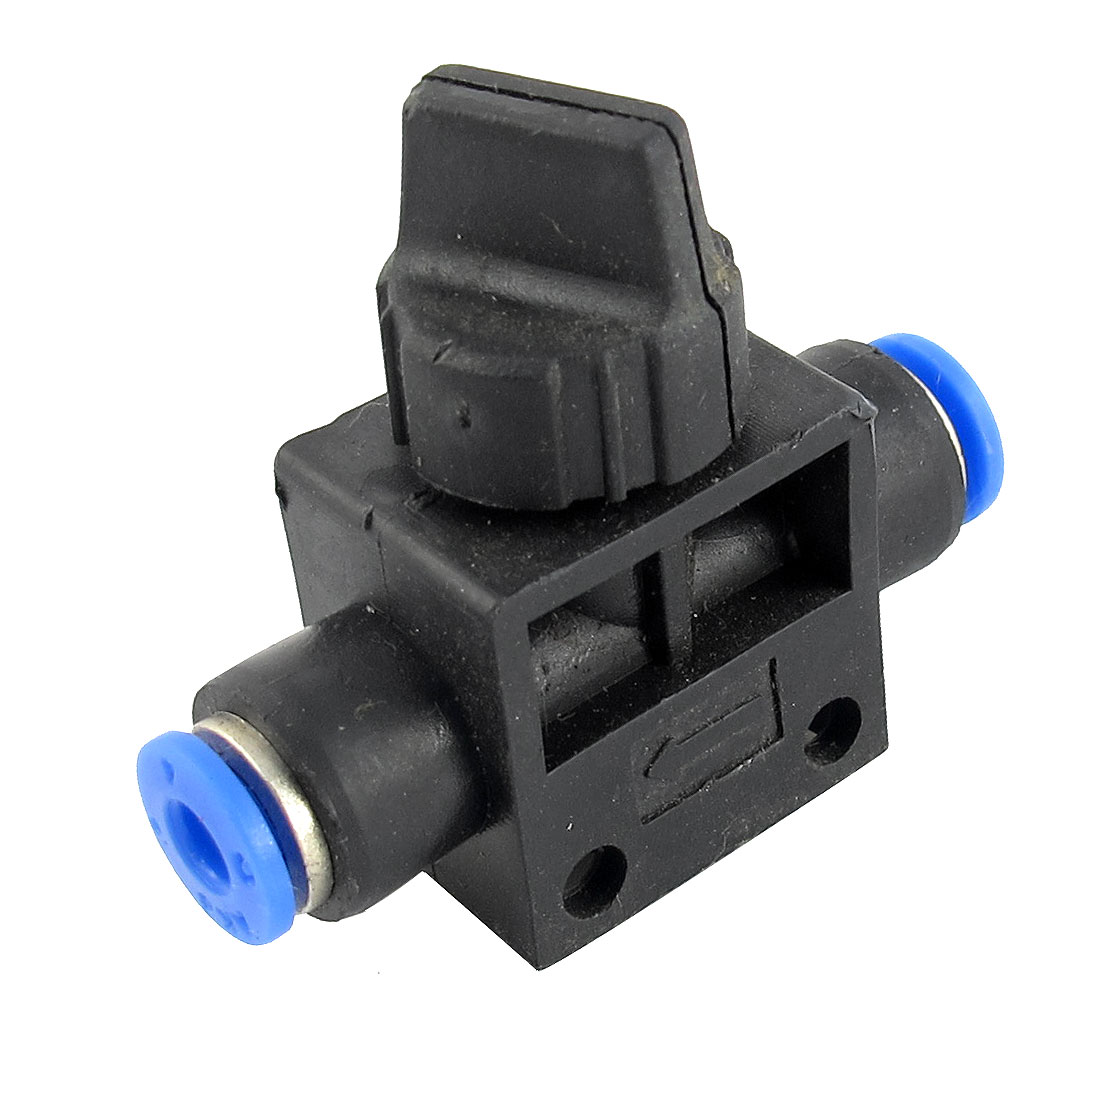 4mm to 4mm Push in Tube 2 Way T-Shaped Air Pneumatic Quick Release Fitting Connector Speed Controller Valve